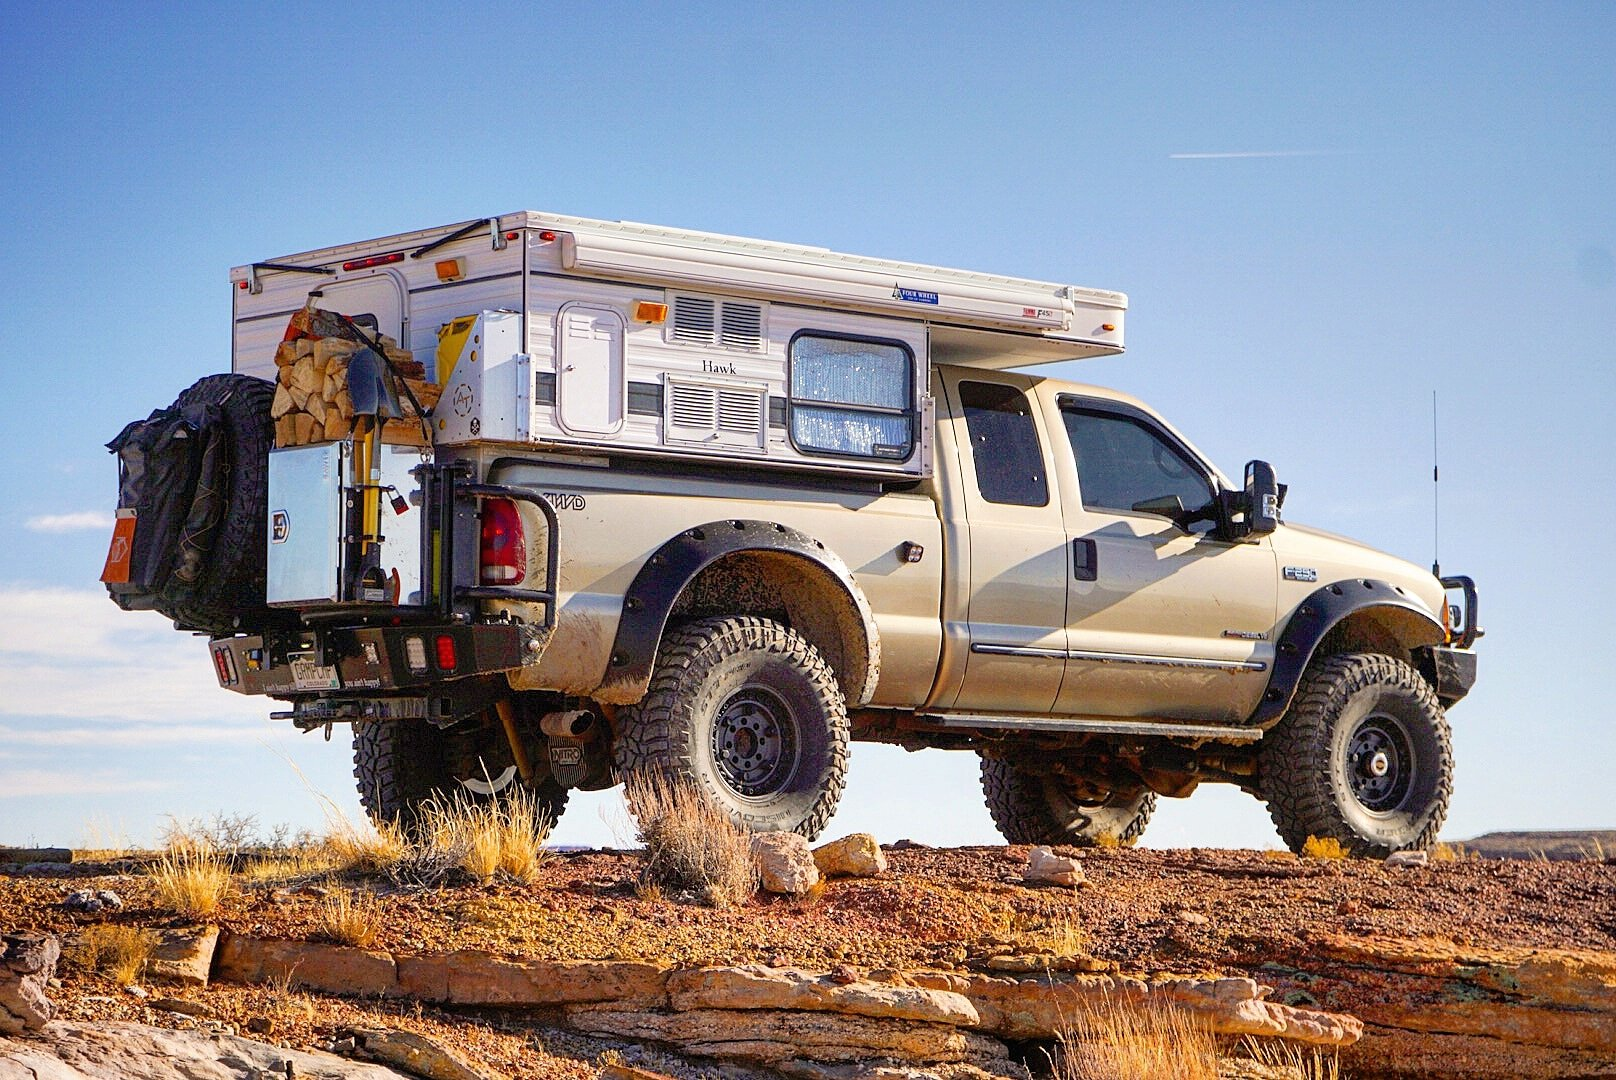 Classic Overland Ford F250 Gramp Camp Overland Kitted